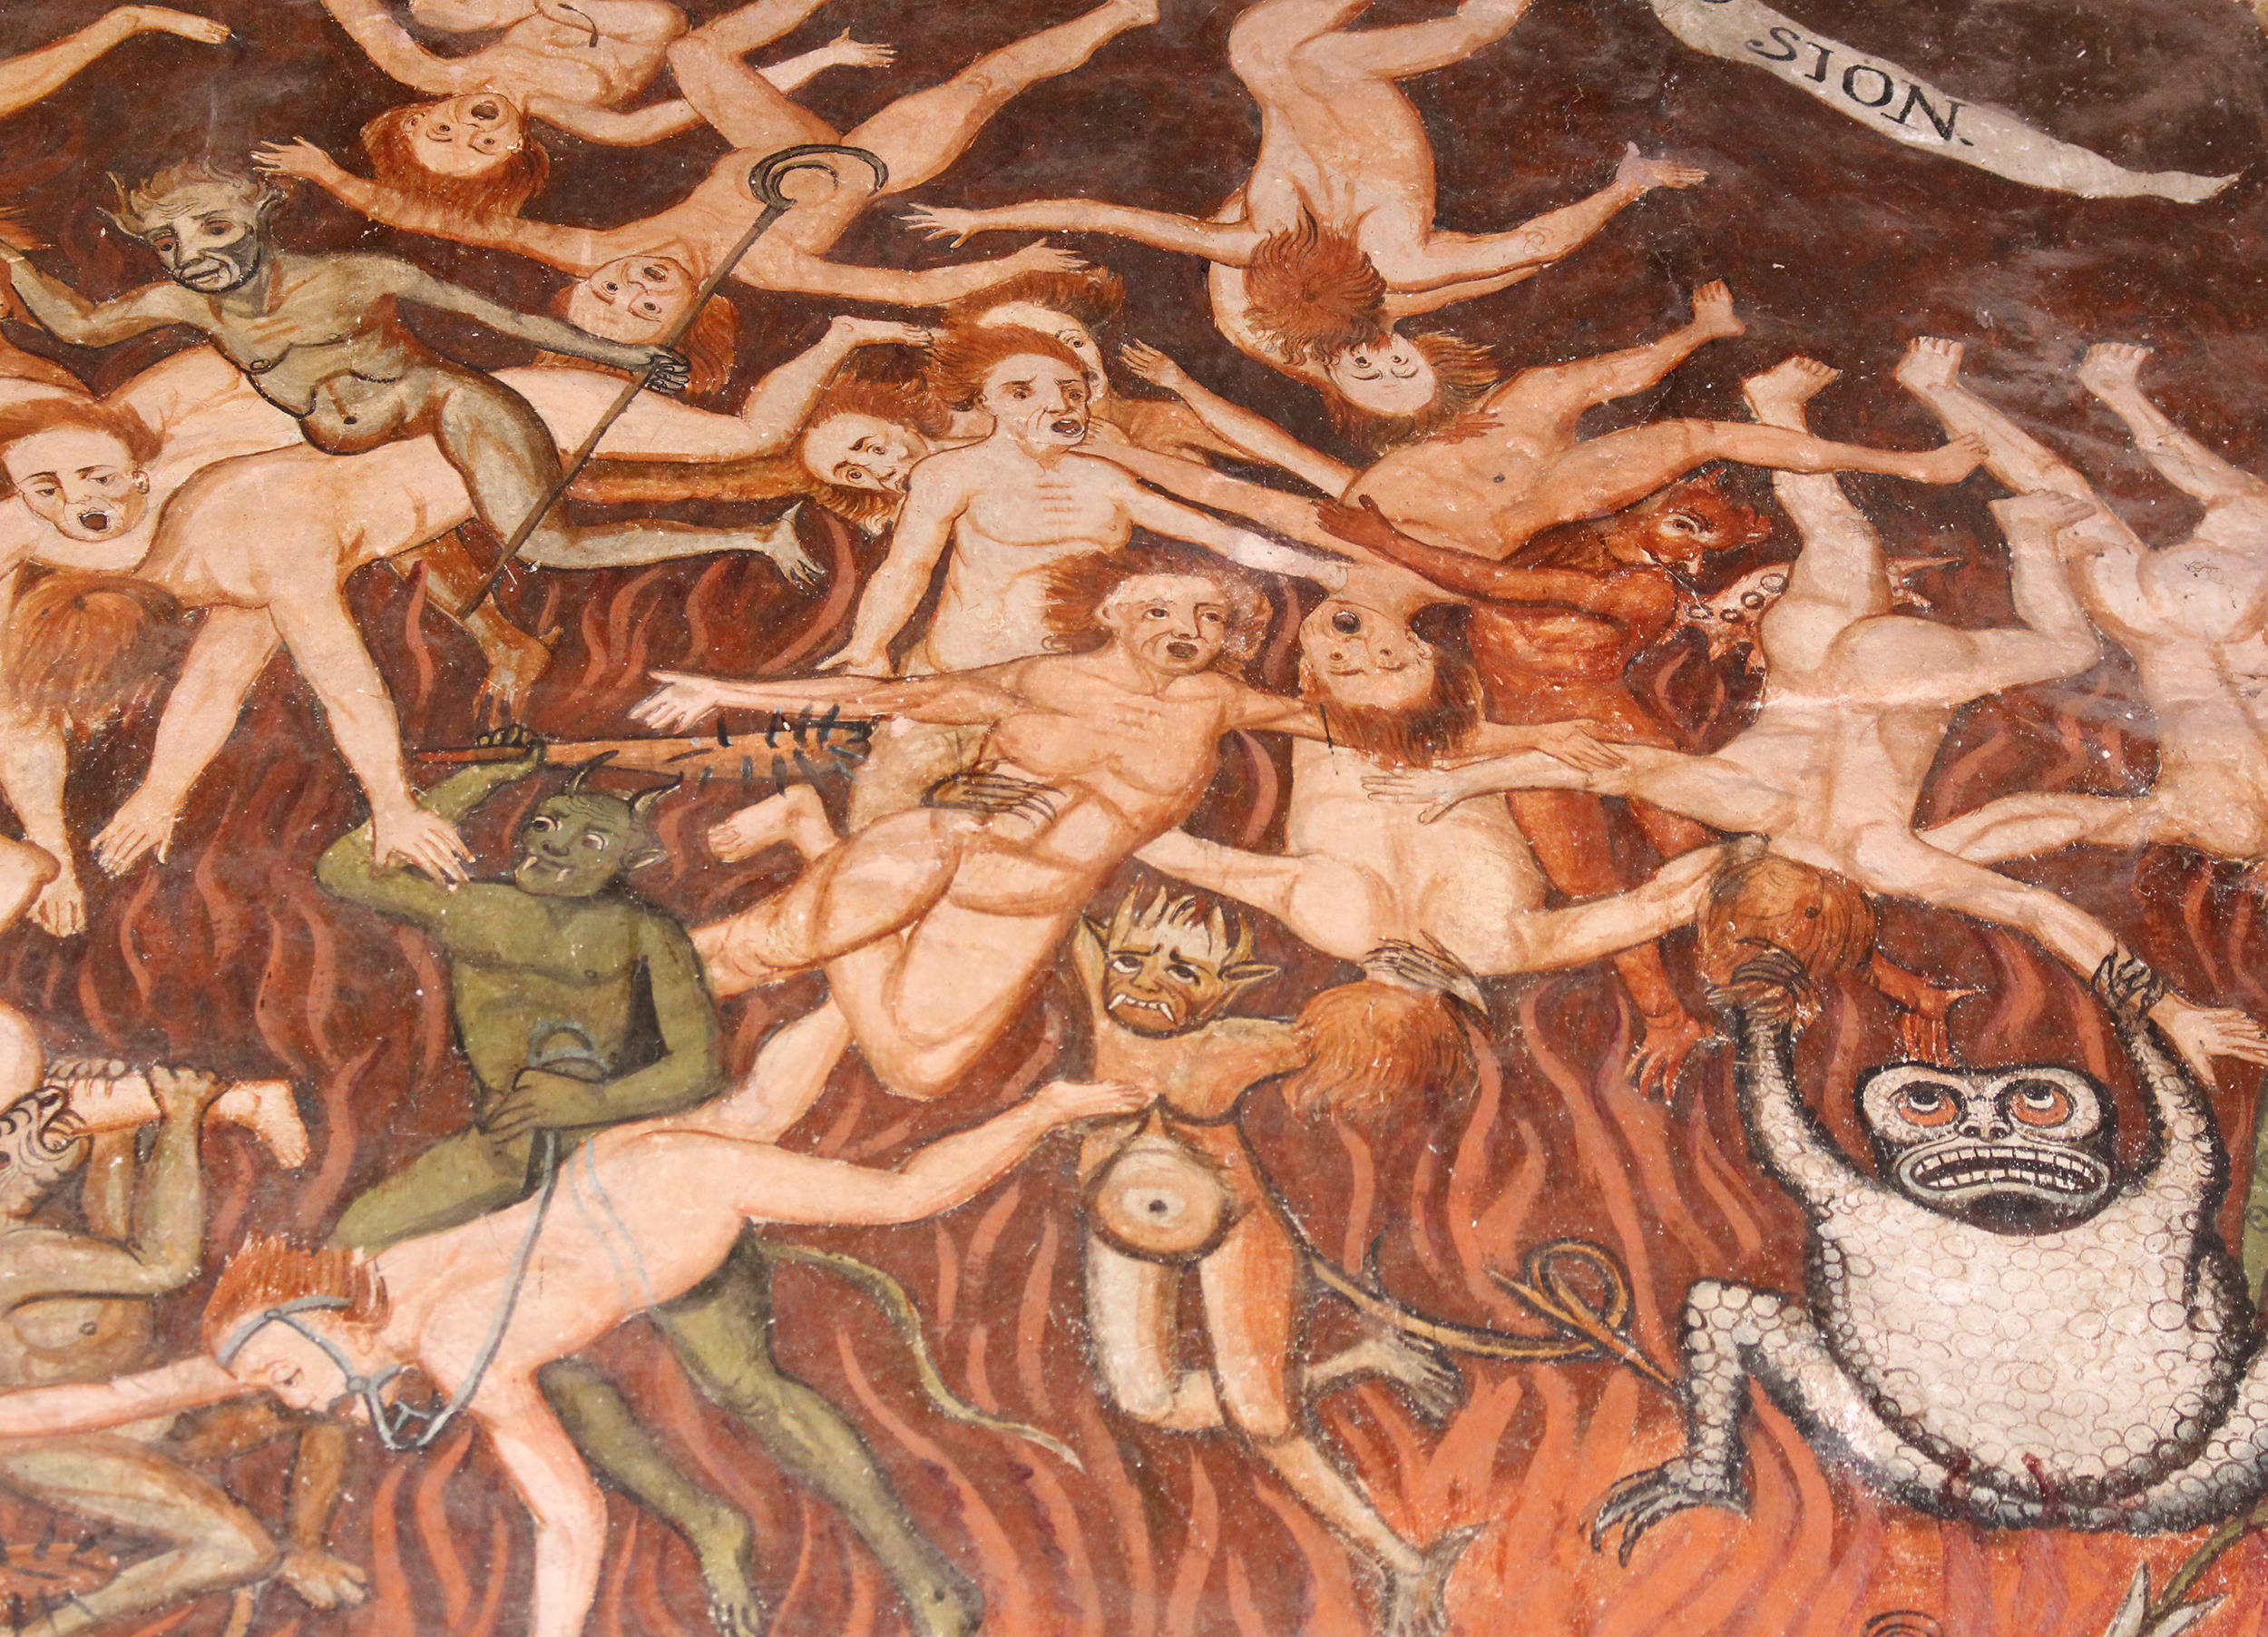 Fig. 41 Detail, Hell, 1802. Murals by Tadeo Escalante, Church of Huaro, Quispicanchi Province. Photo by author.